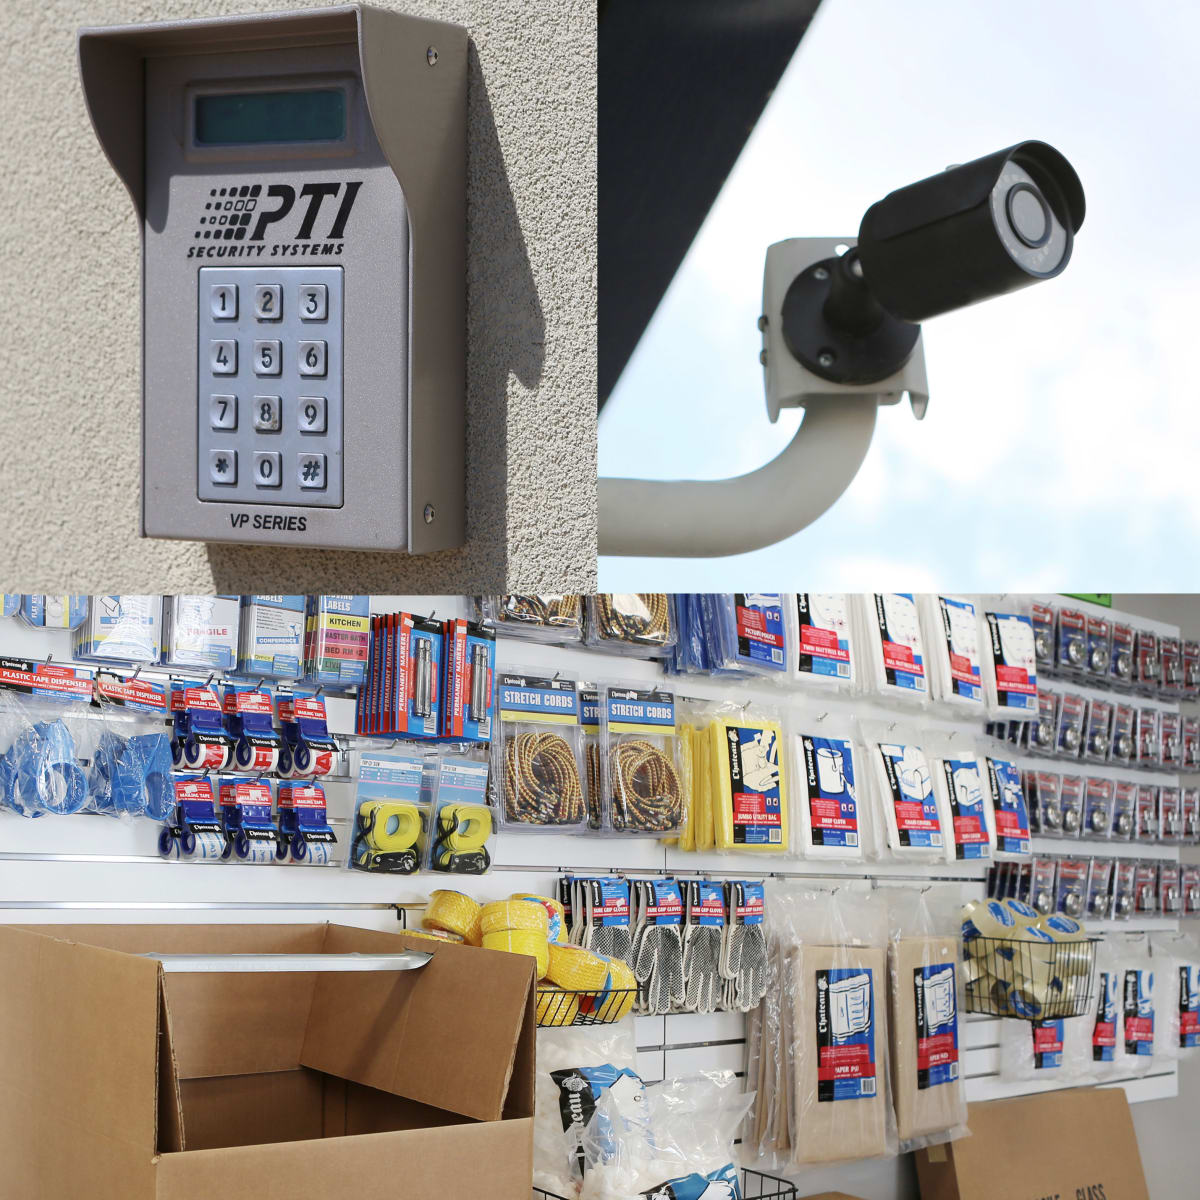 We provide 24 hour security monitoring and sell various moving and packing supplies at StoreSmart Self-Storage in Warner Robins, Georgia